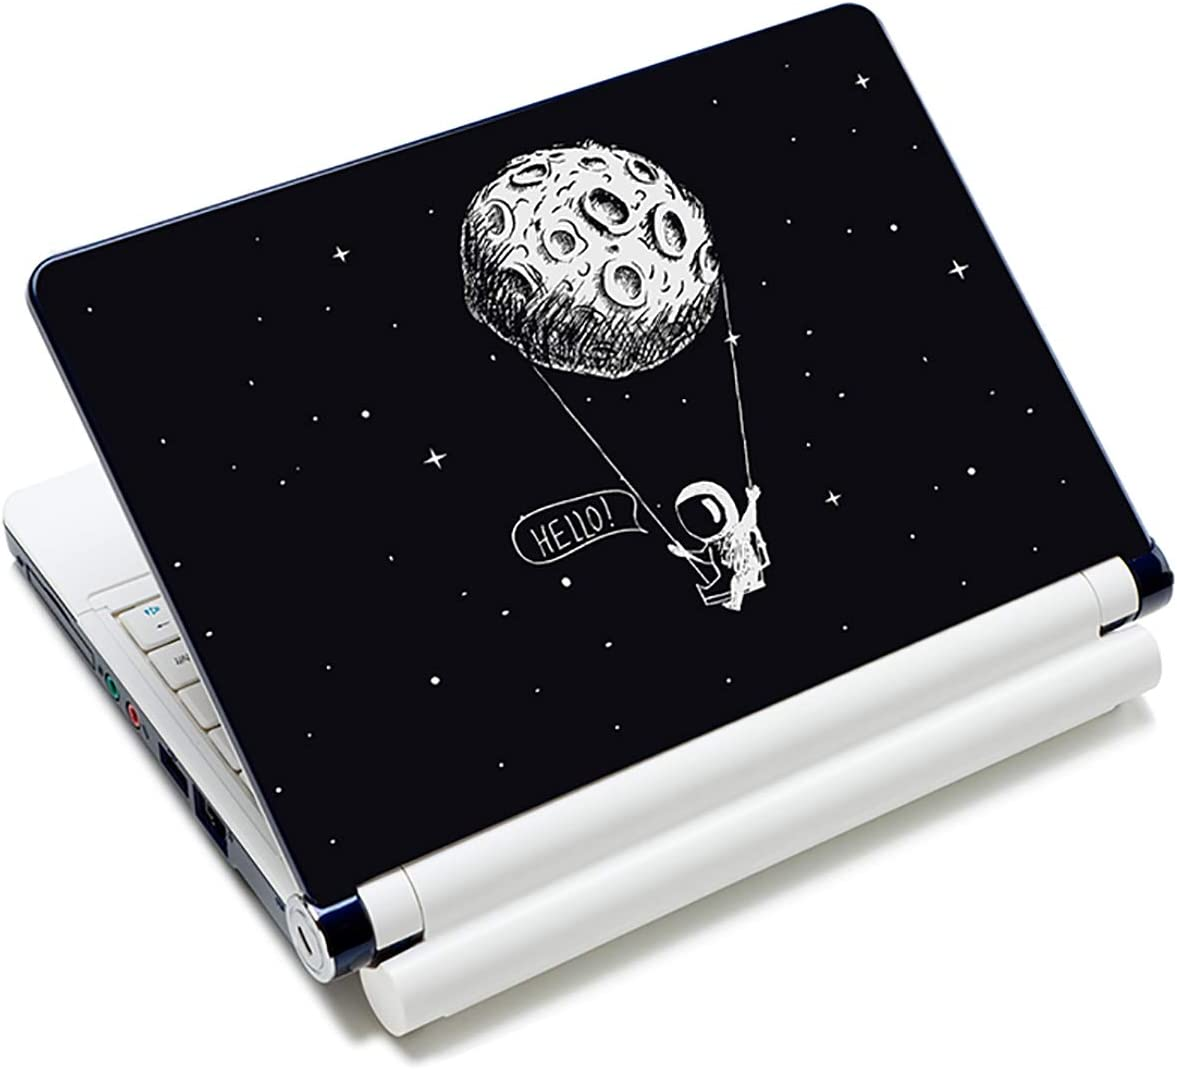 15.6 inch Laptop Notebook Skin Sticker Cover Art Decal Fits 13.3